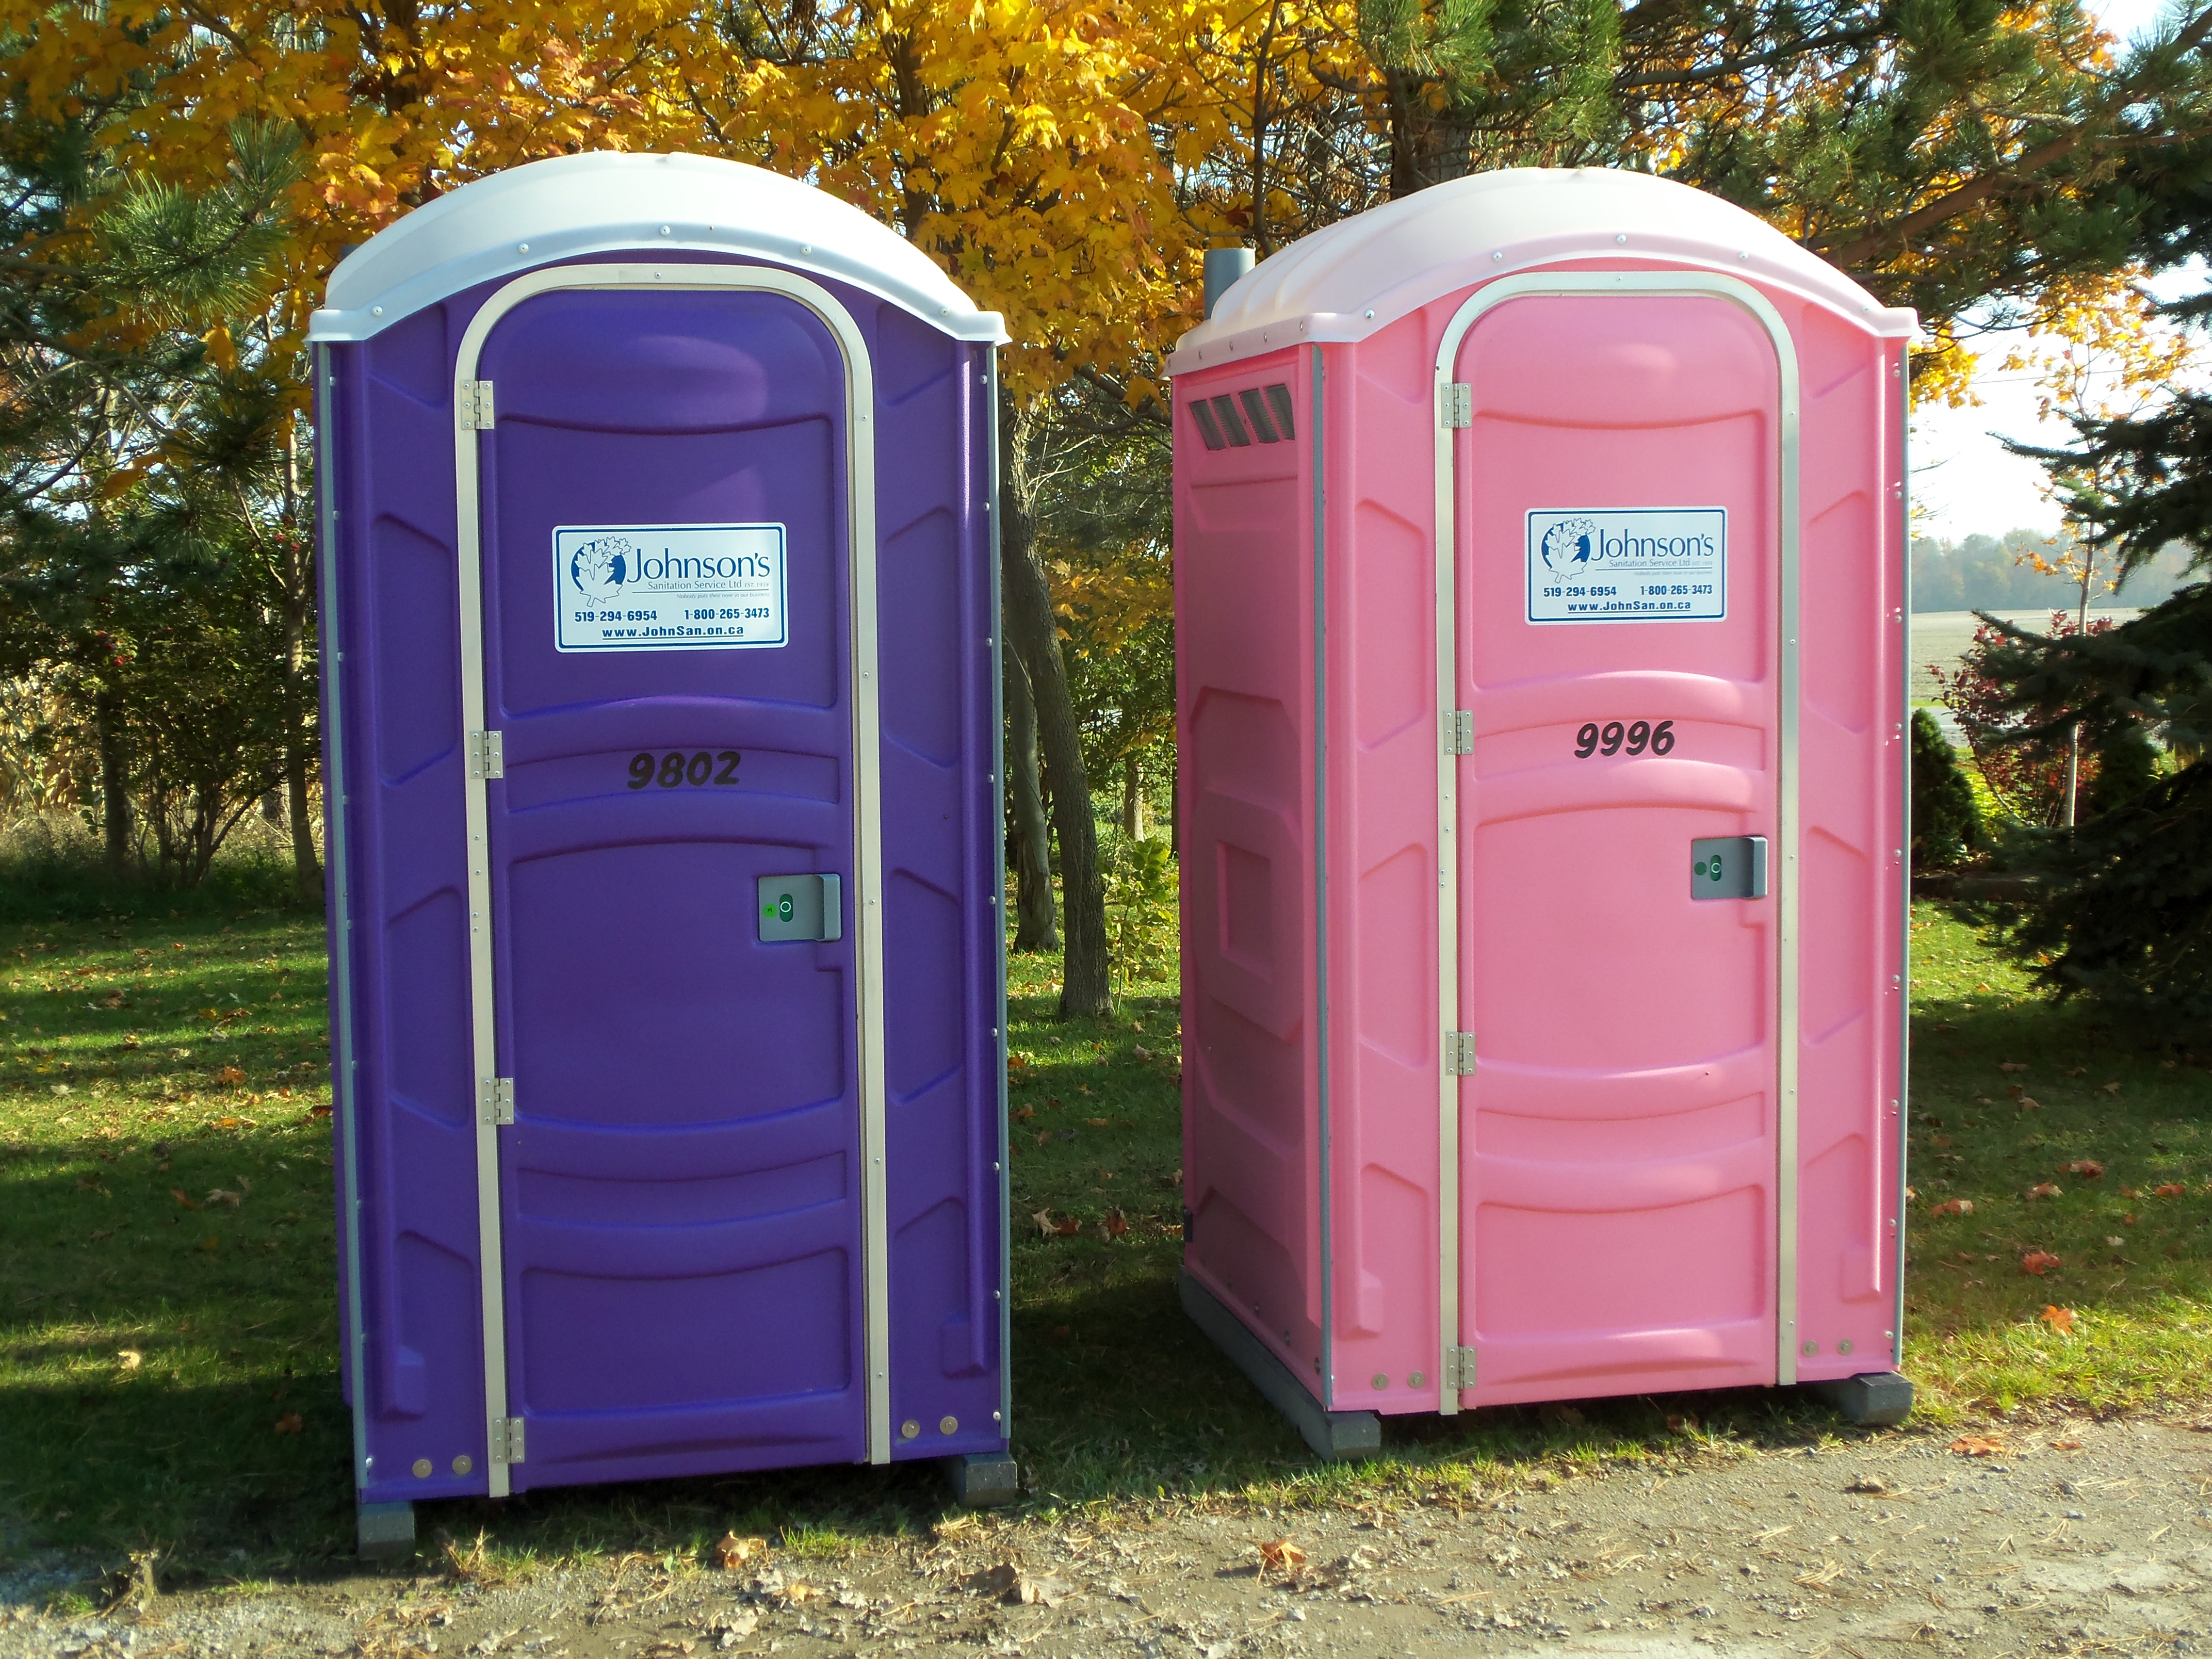 rental product porta portable luxury trailers category service sanitation bathroom restroom potty